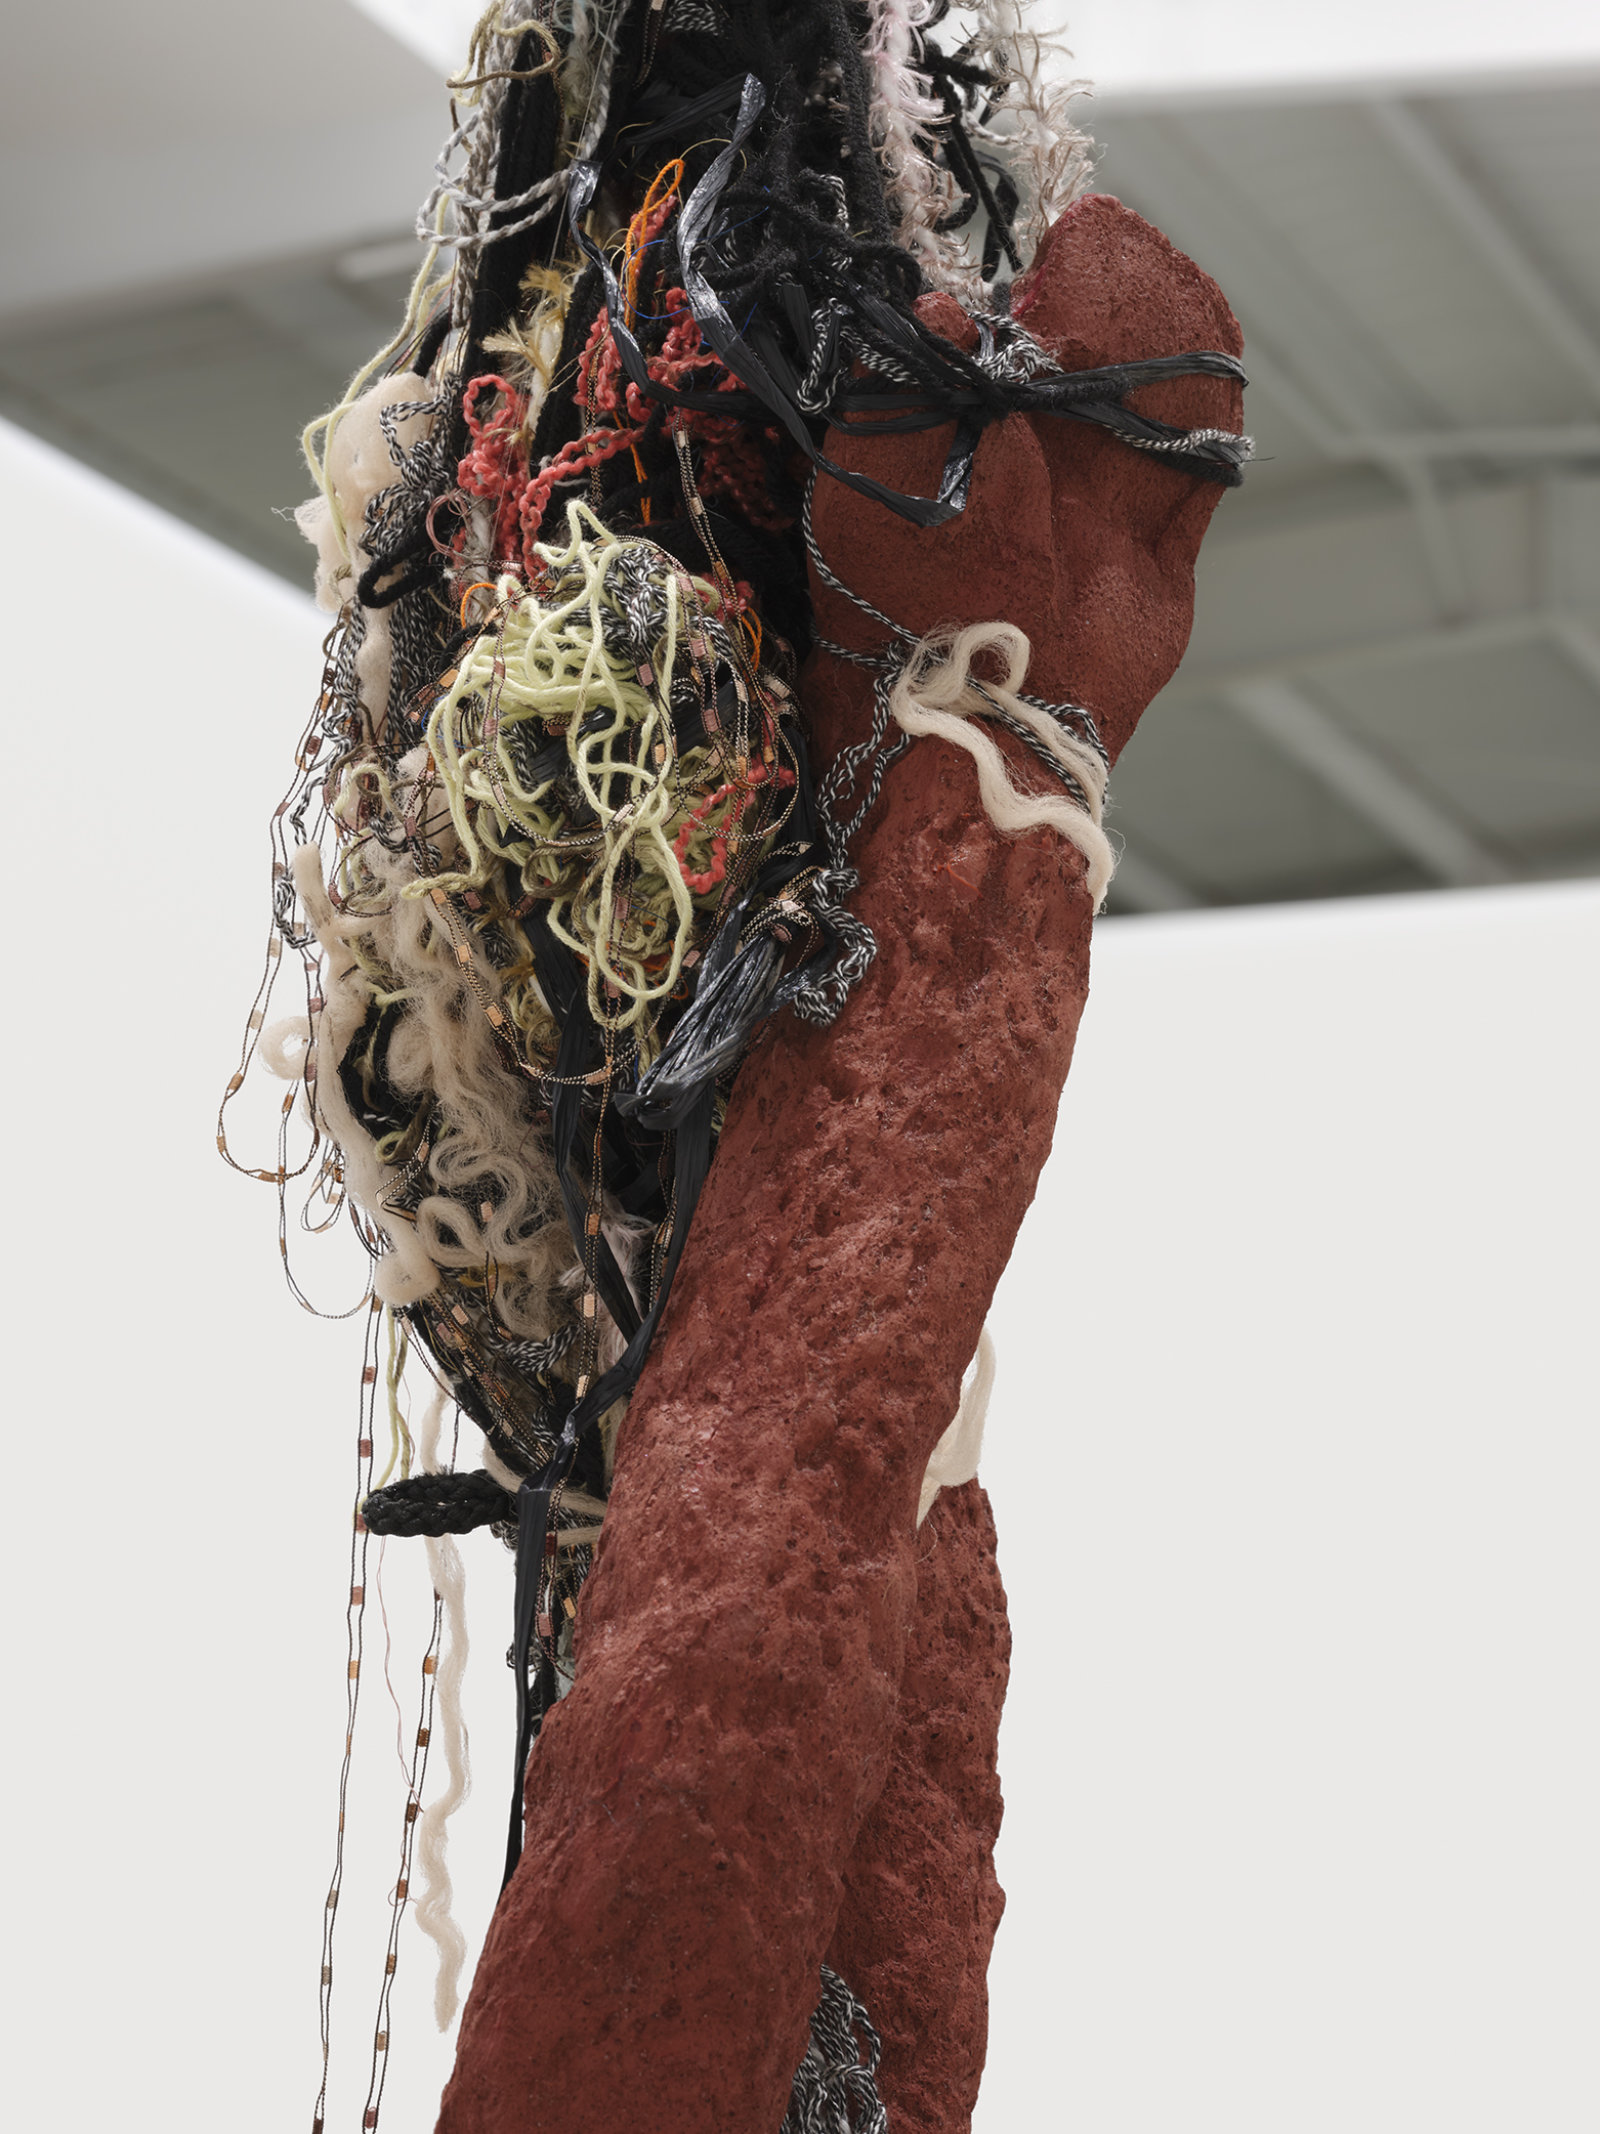 Liz Magor, Delivery (red) (detail), 2018, silicone rubber, textiles, twine, 325 x 26 x 23 in. (826 x 66 x 58 cm) by Liz Magor